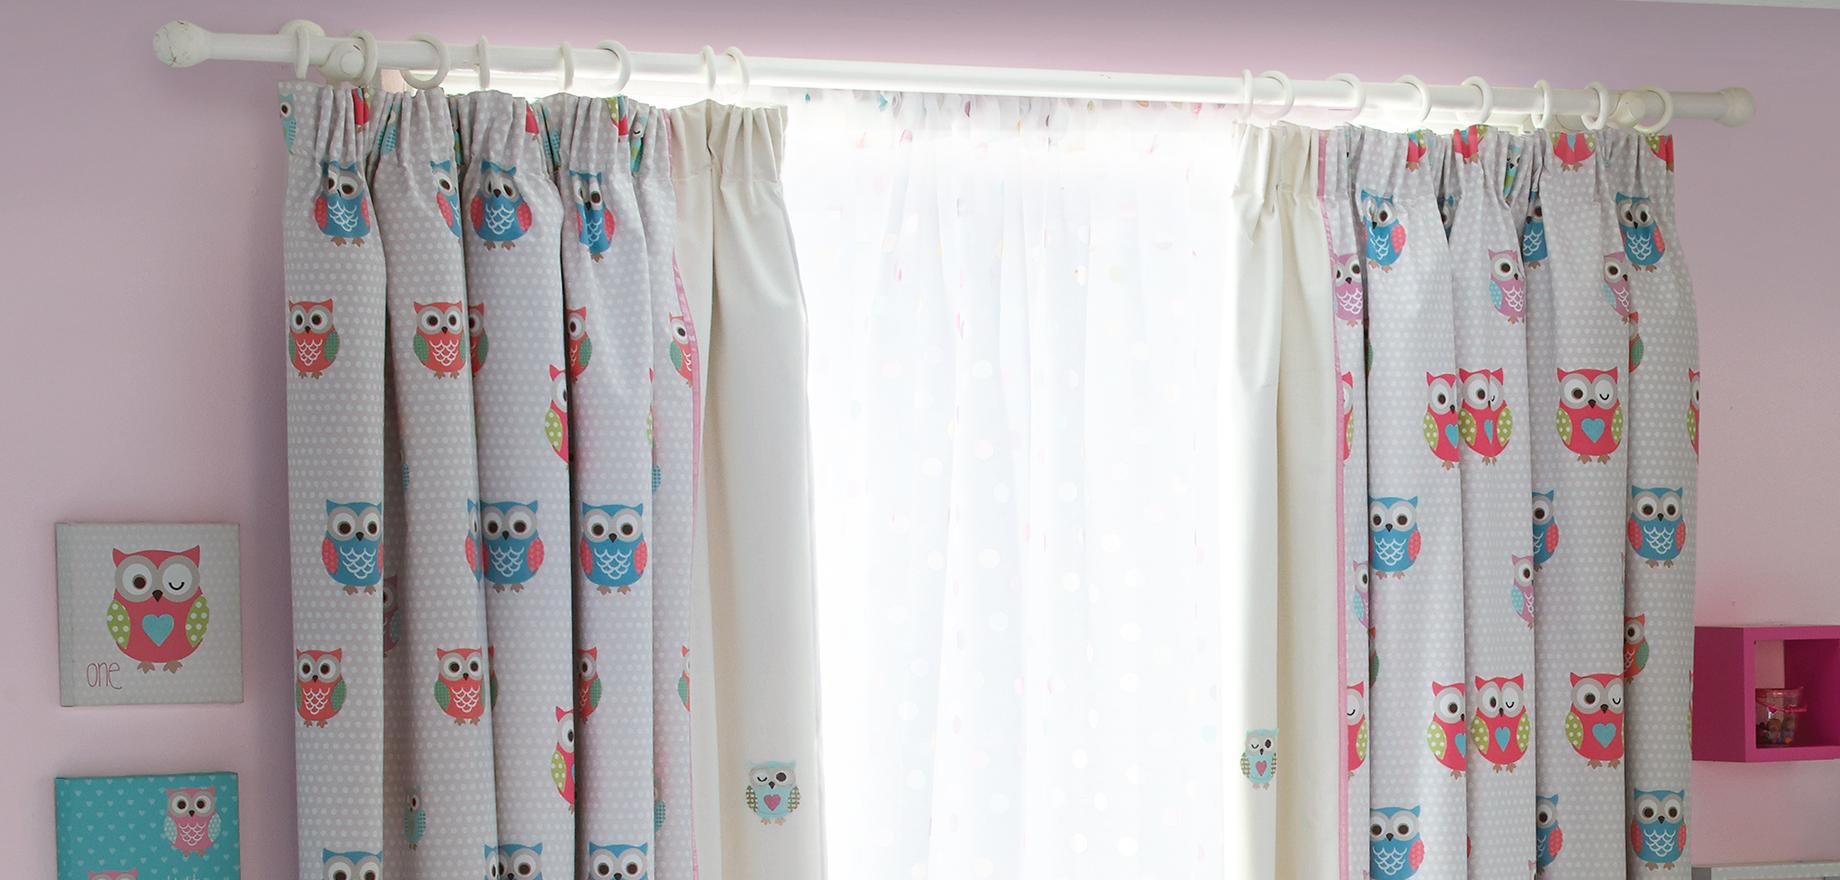 Children's curtains and blinds